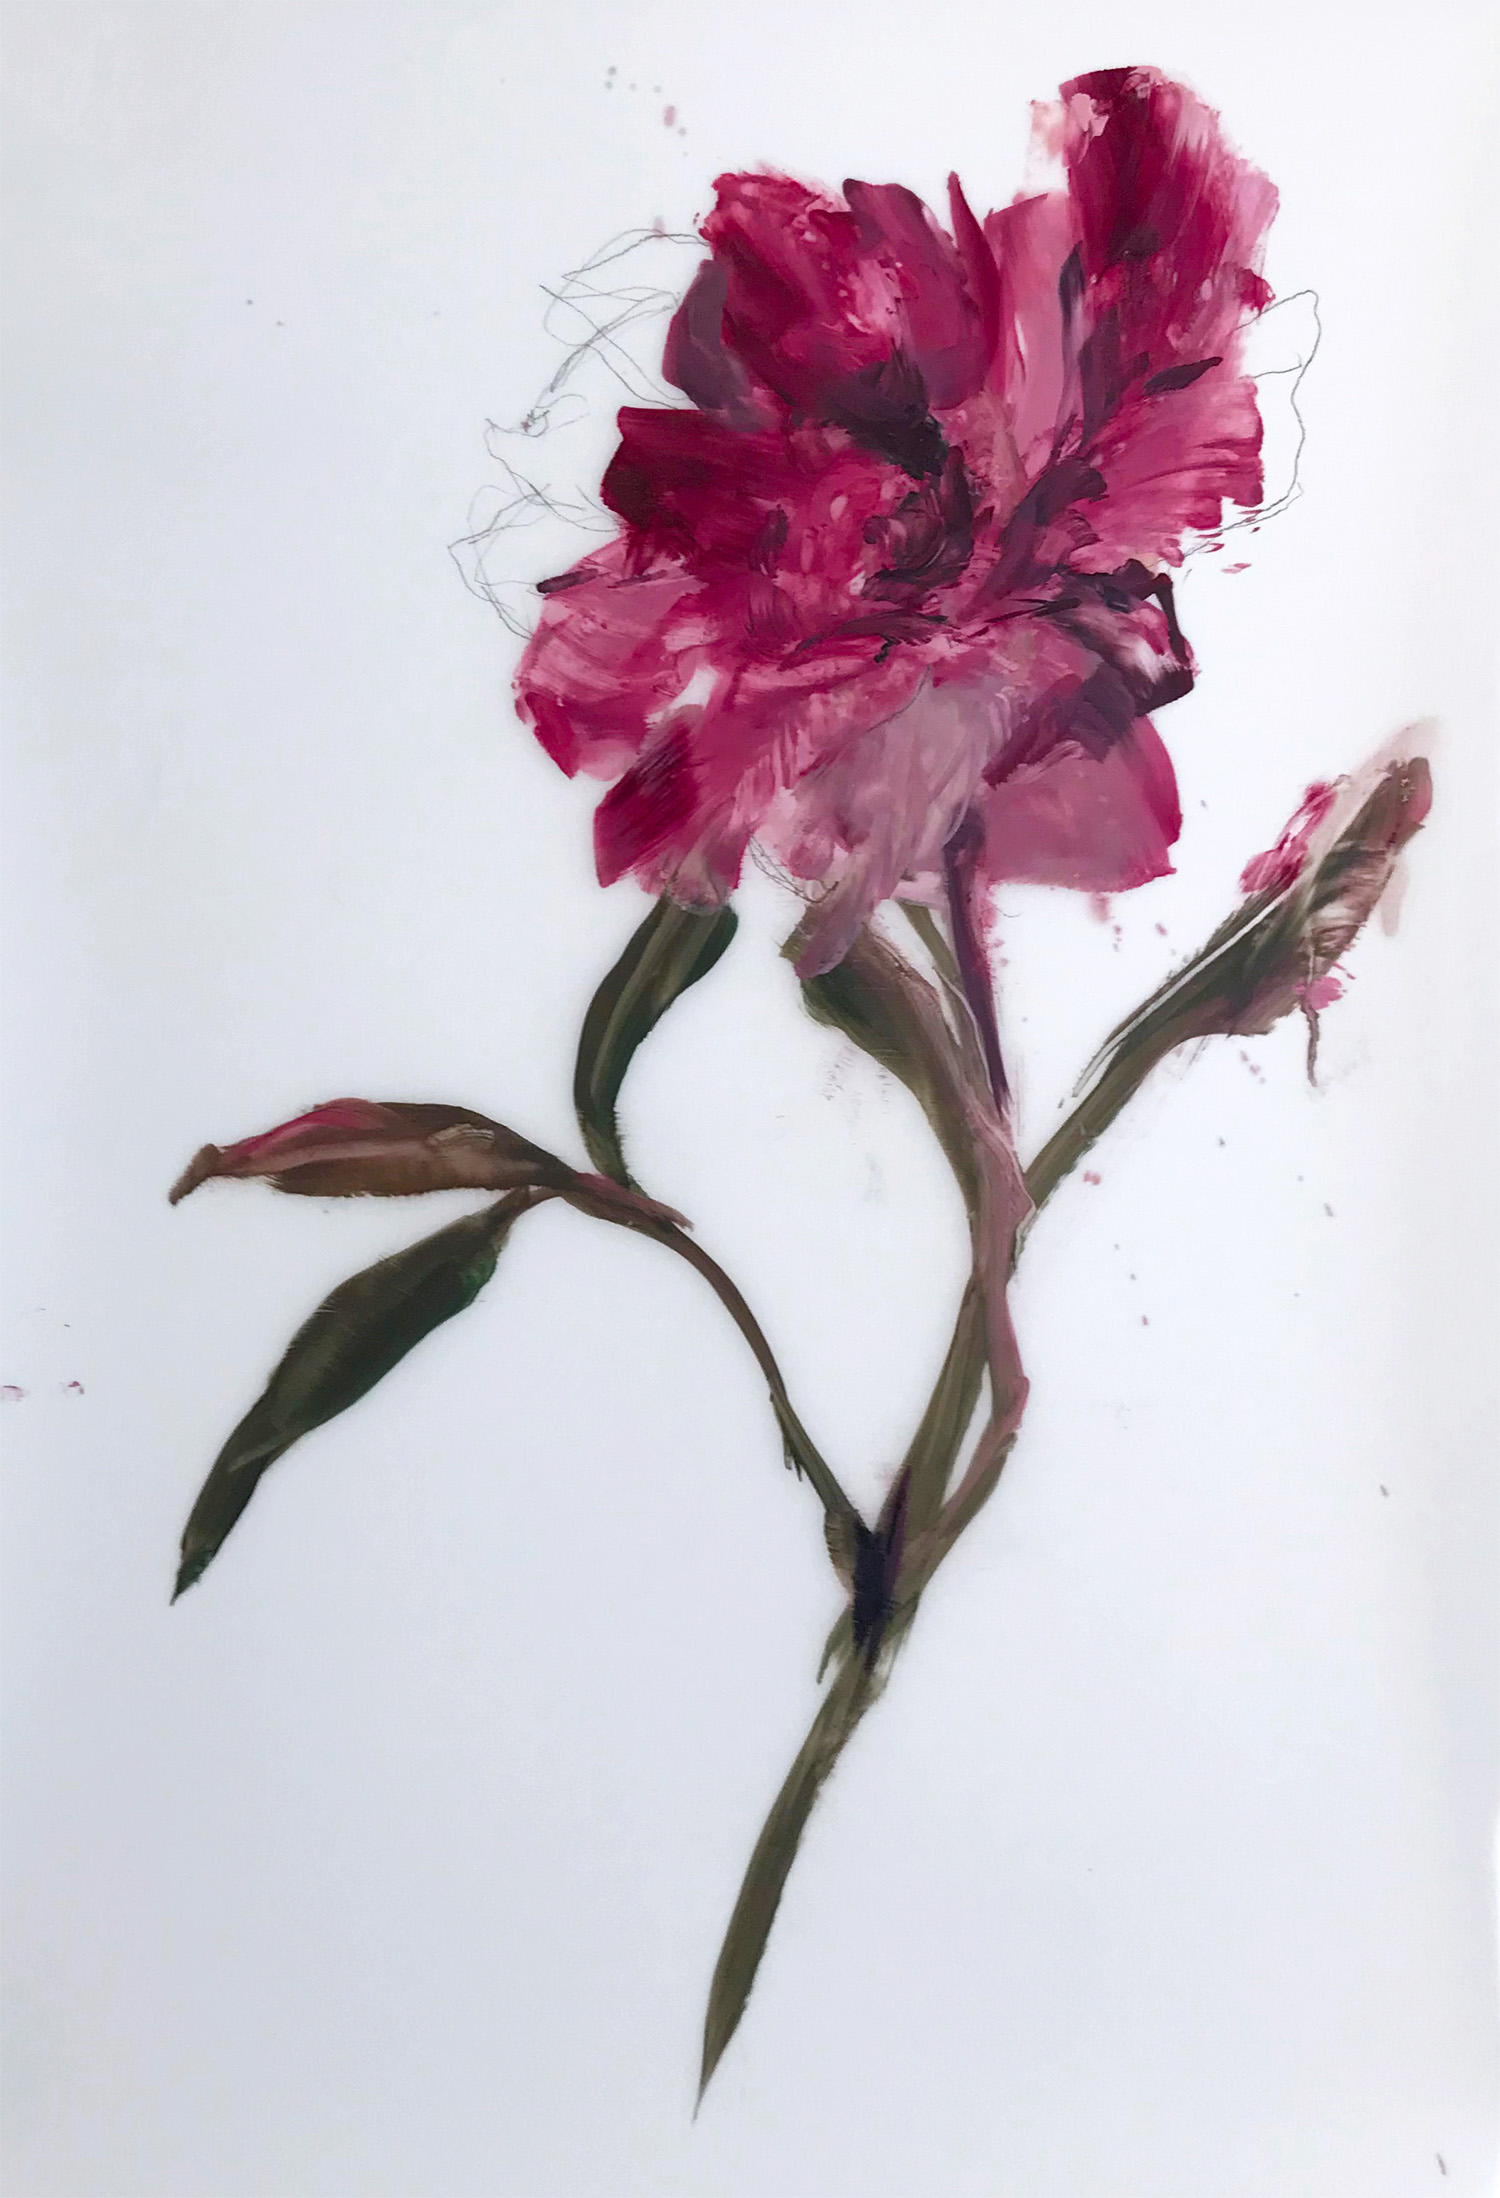 Madeleine Lamont, Single Pink Stem, oil on mylar, 36 x 24 in.